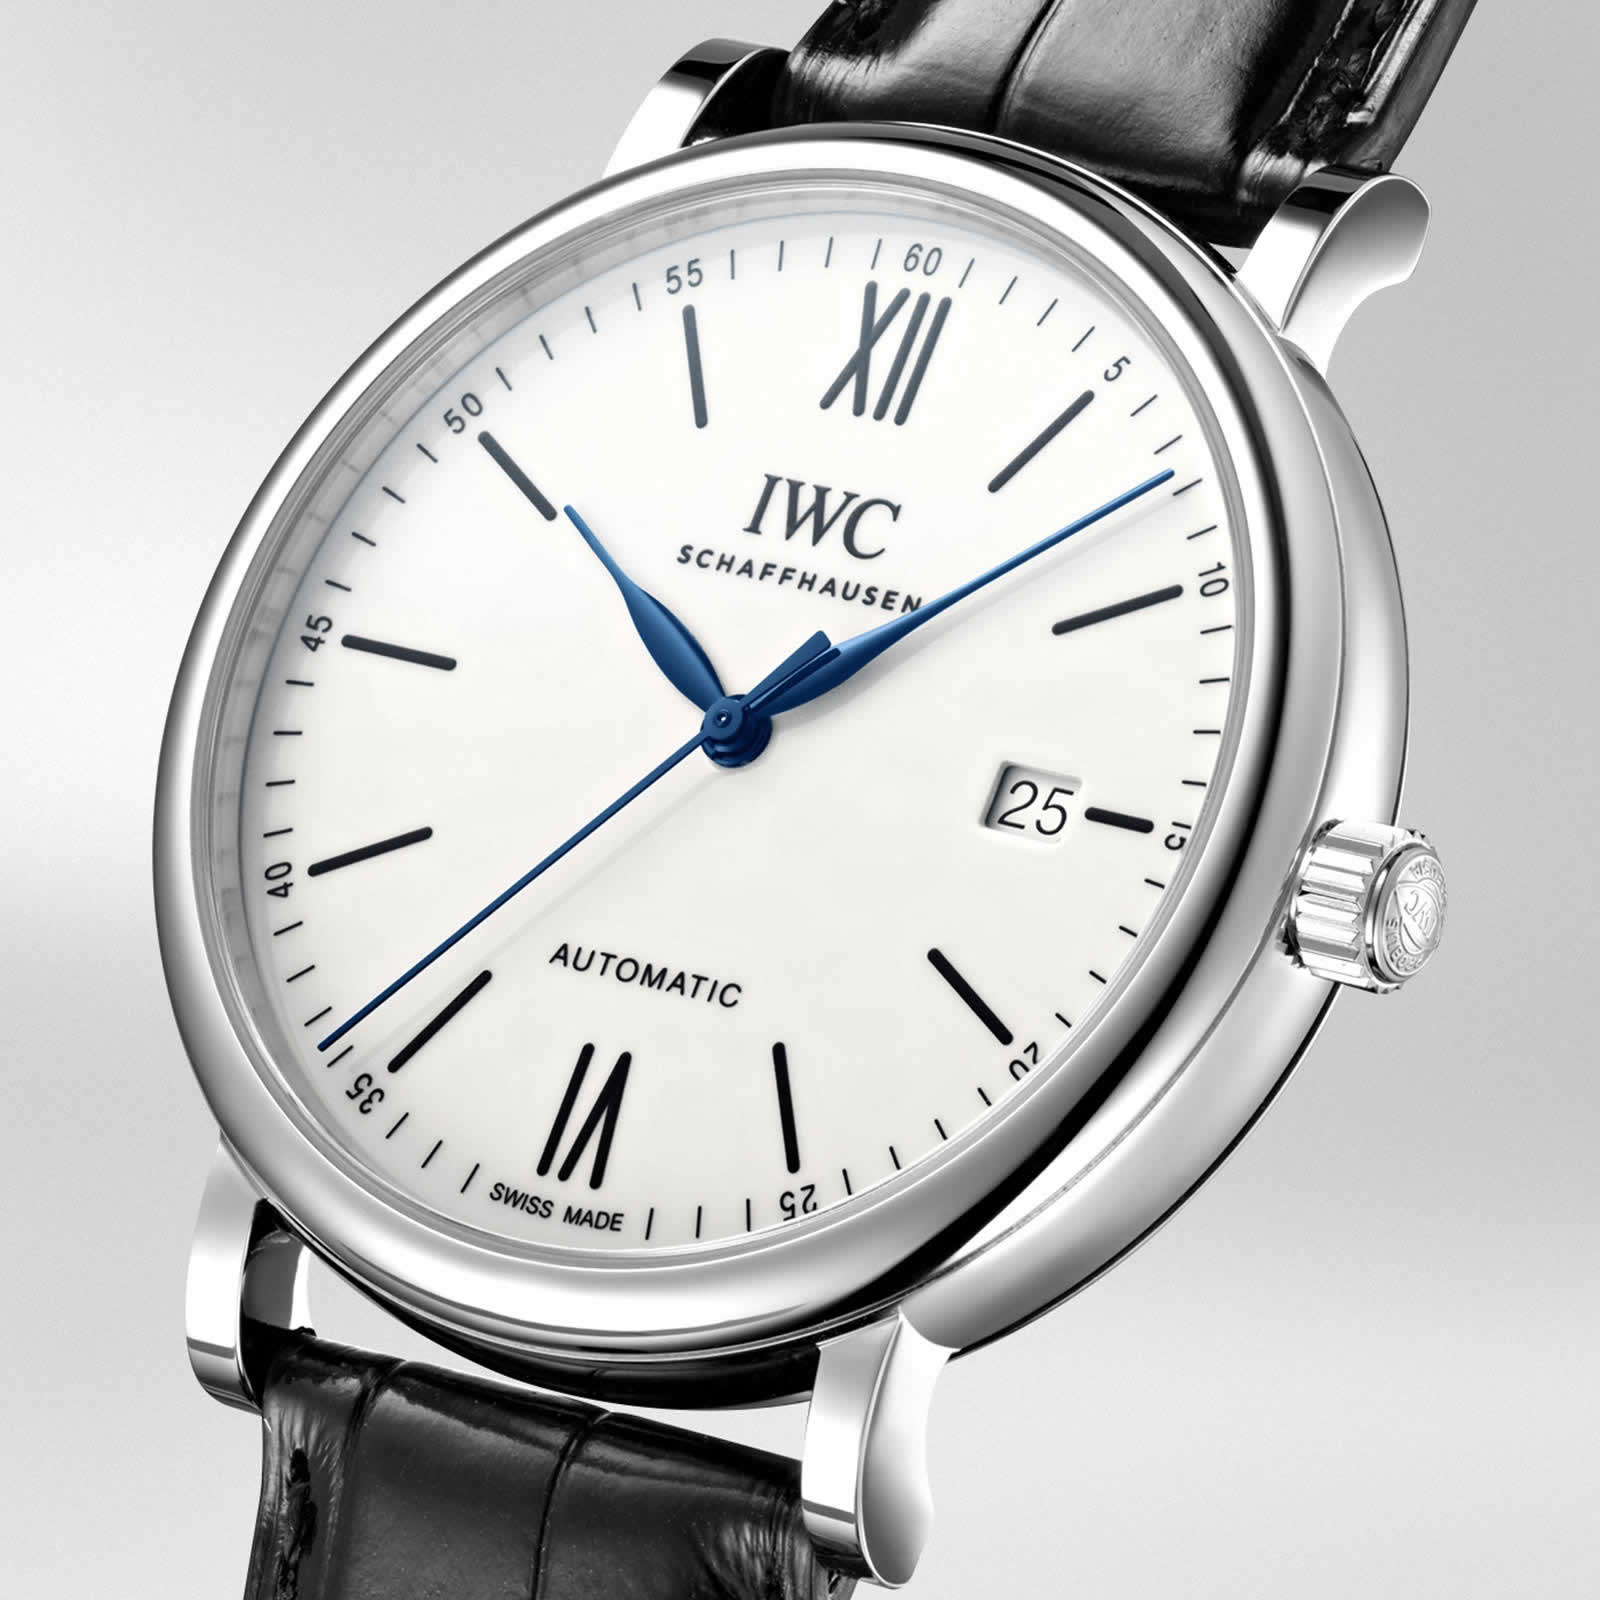 iwc-Portofino-Chronograph-Edition-150-Years.jpg